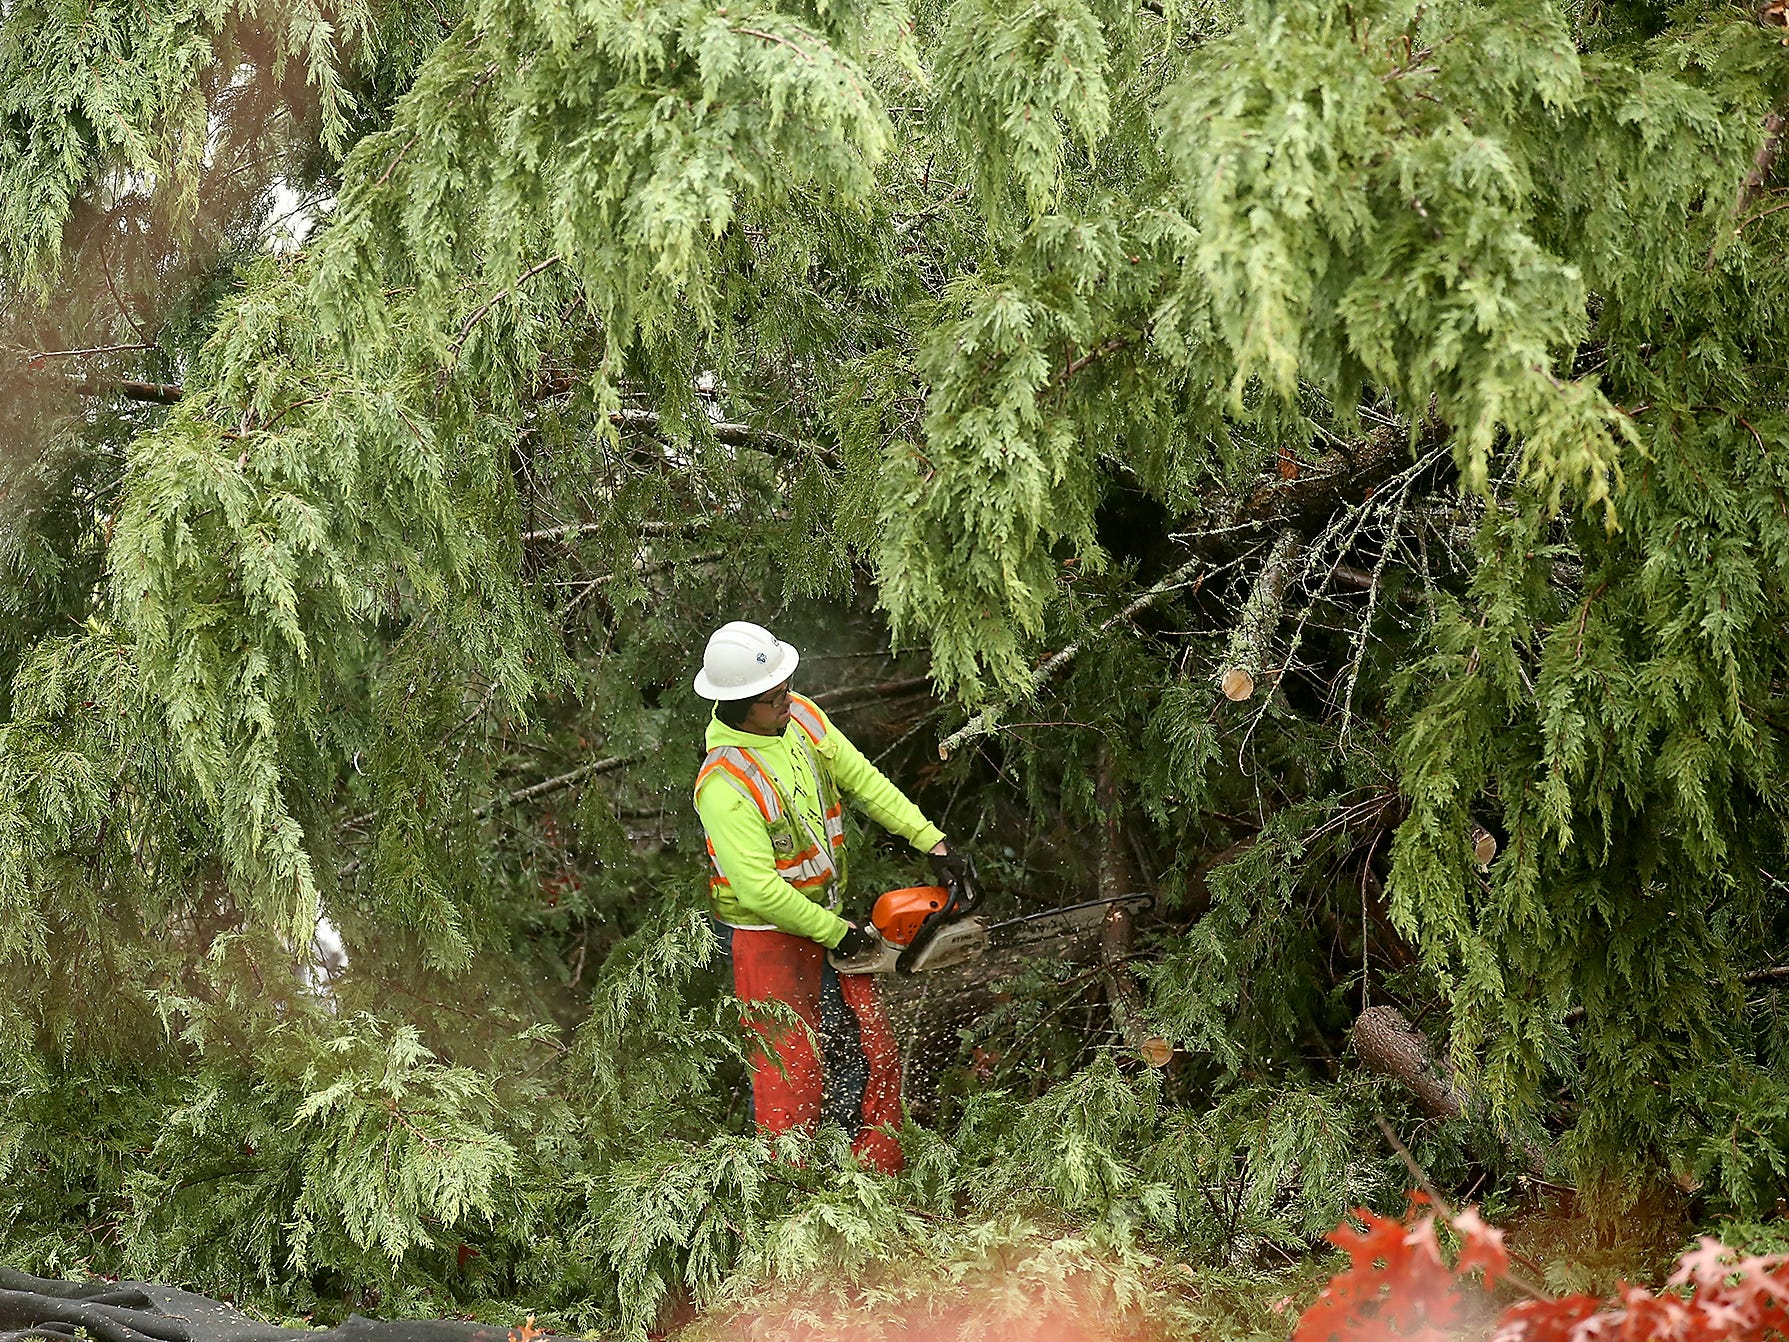 A county worker cuts a large tree at the corner of Harris and Tiburon in Port Orchard on Wednesday, December 19, 2018.